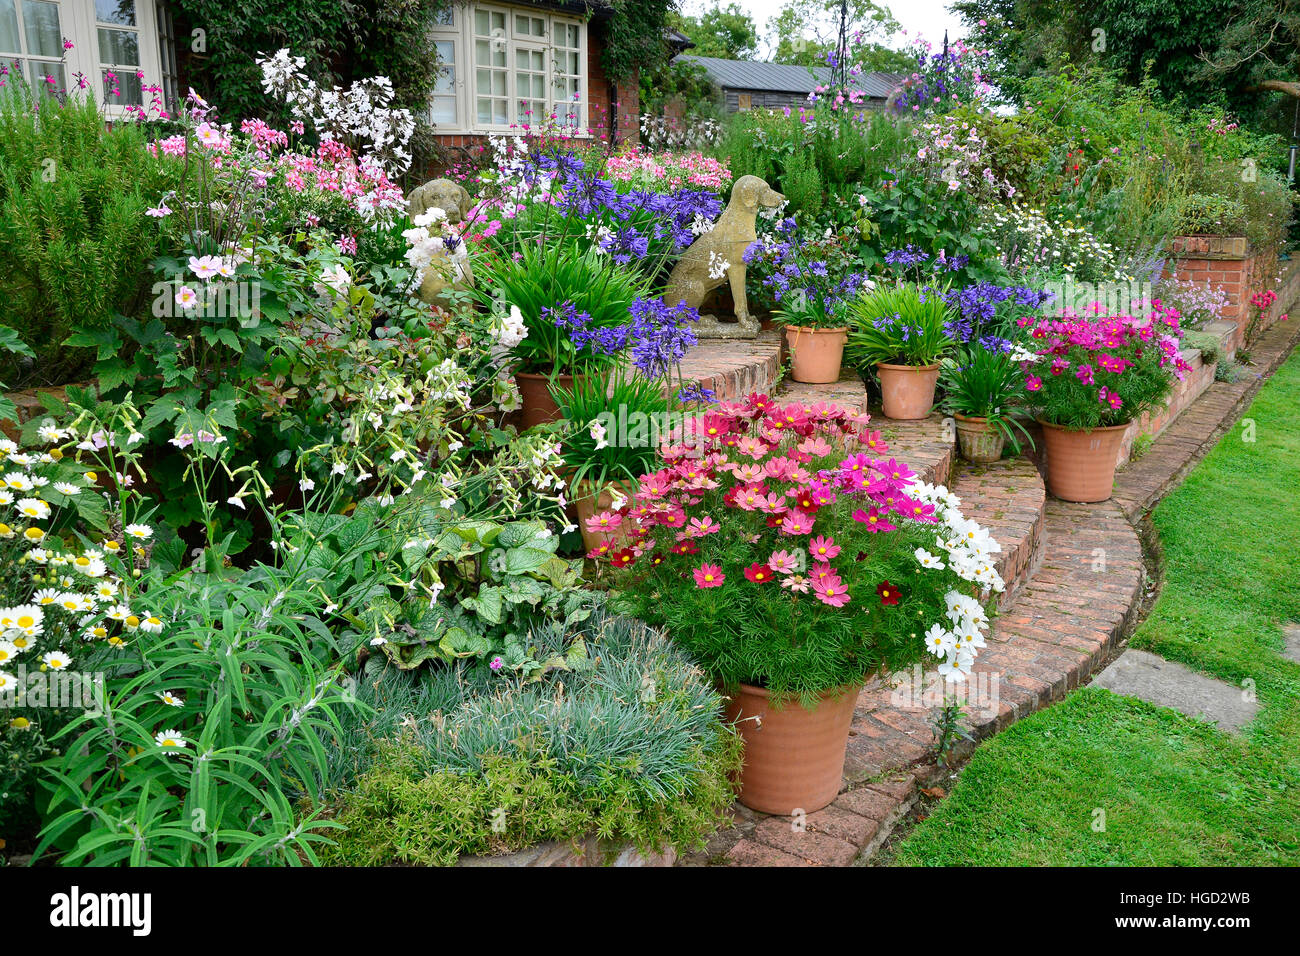 Colourful Garden Terrace With Mixed Flower Beds And Planted Stock